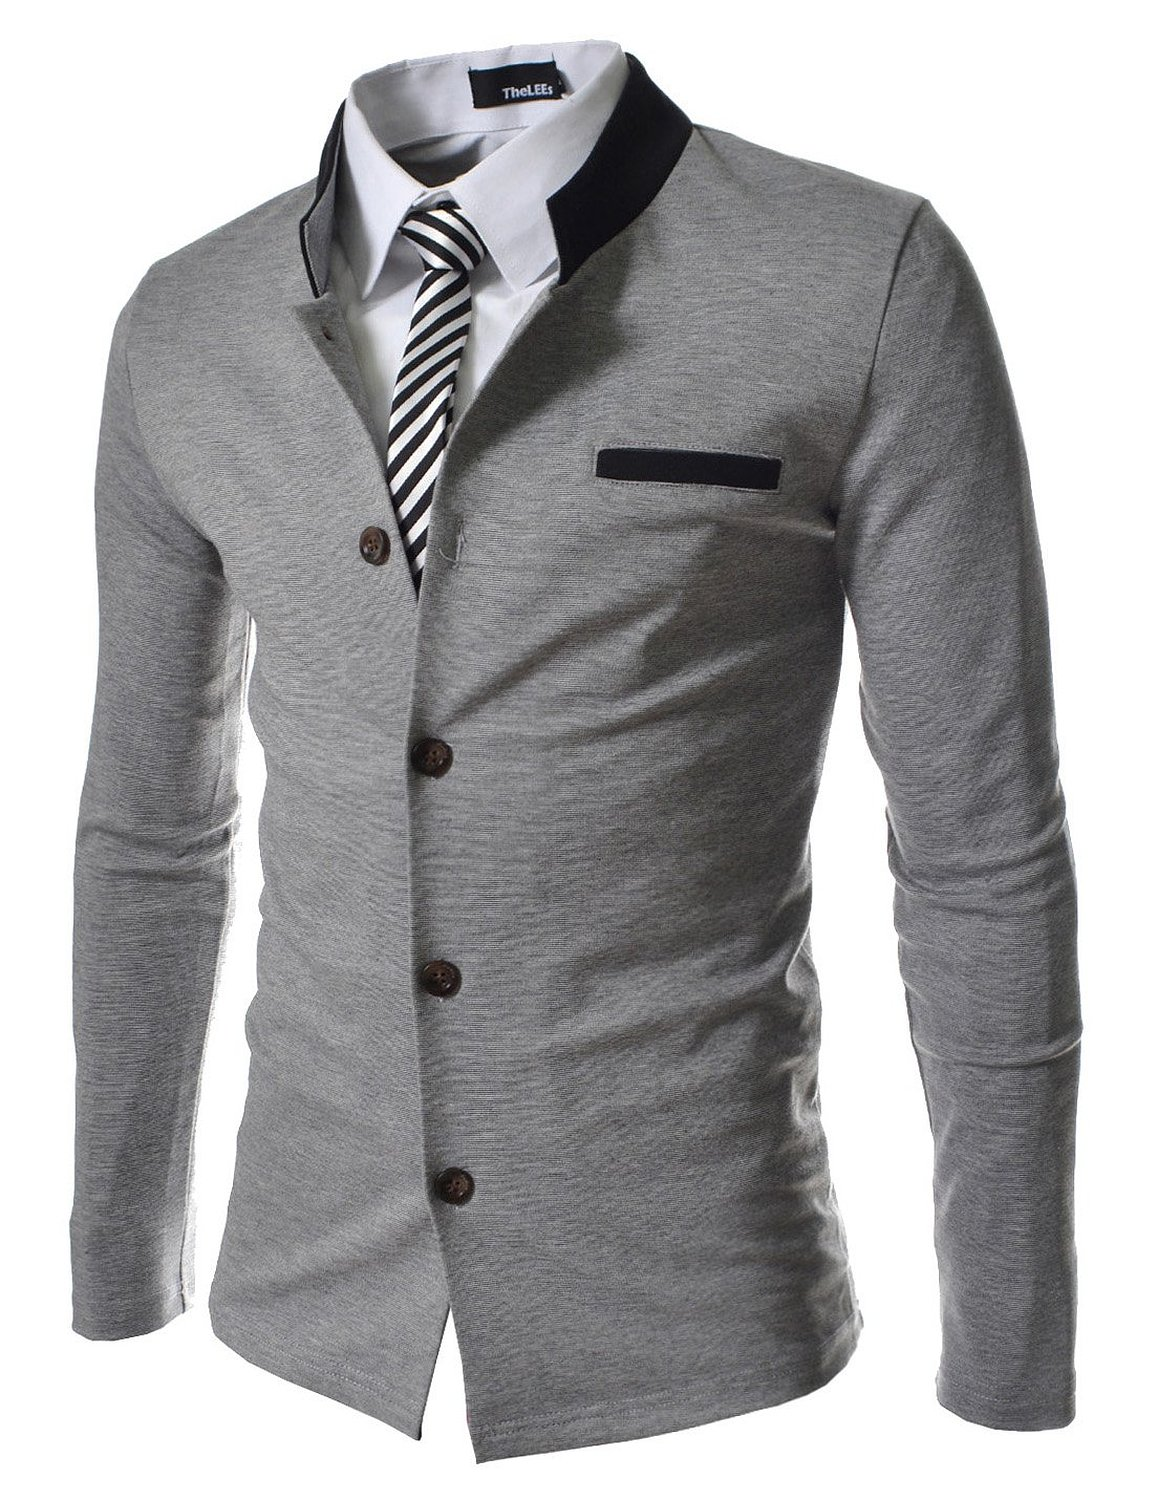 TheLees (GD135) Mens Slim Fit 2 Tone China Collar Cardigan Gray Medium(US Small) at Amazon Men�s Clothing store